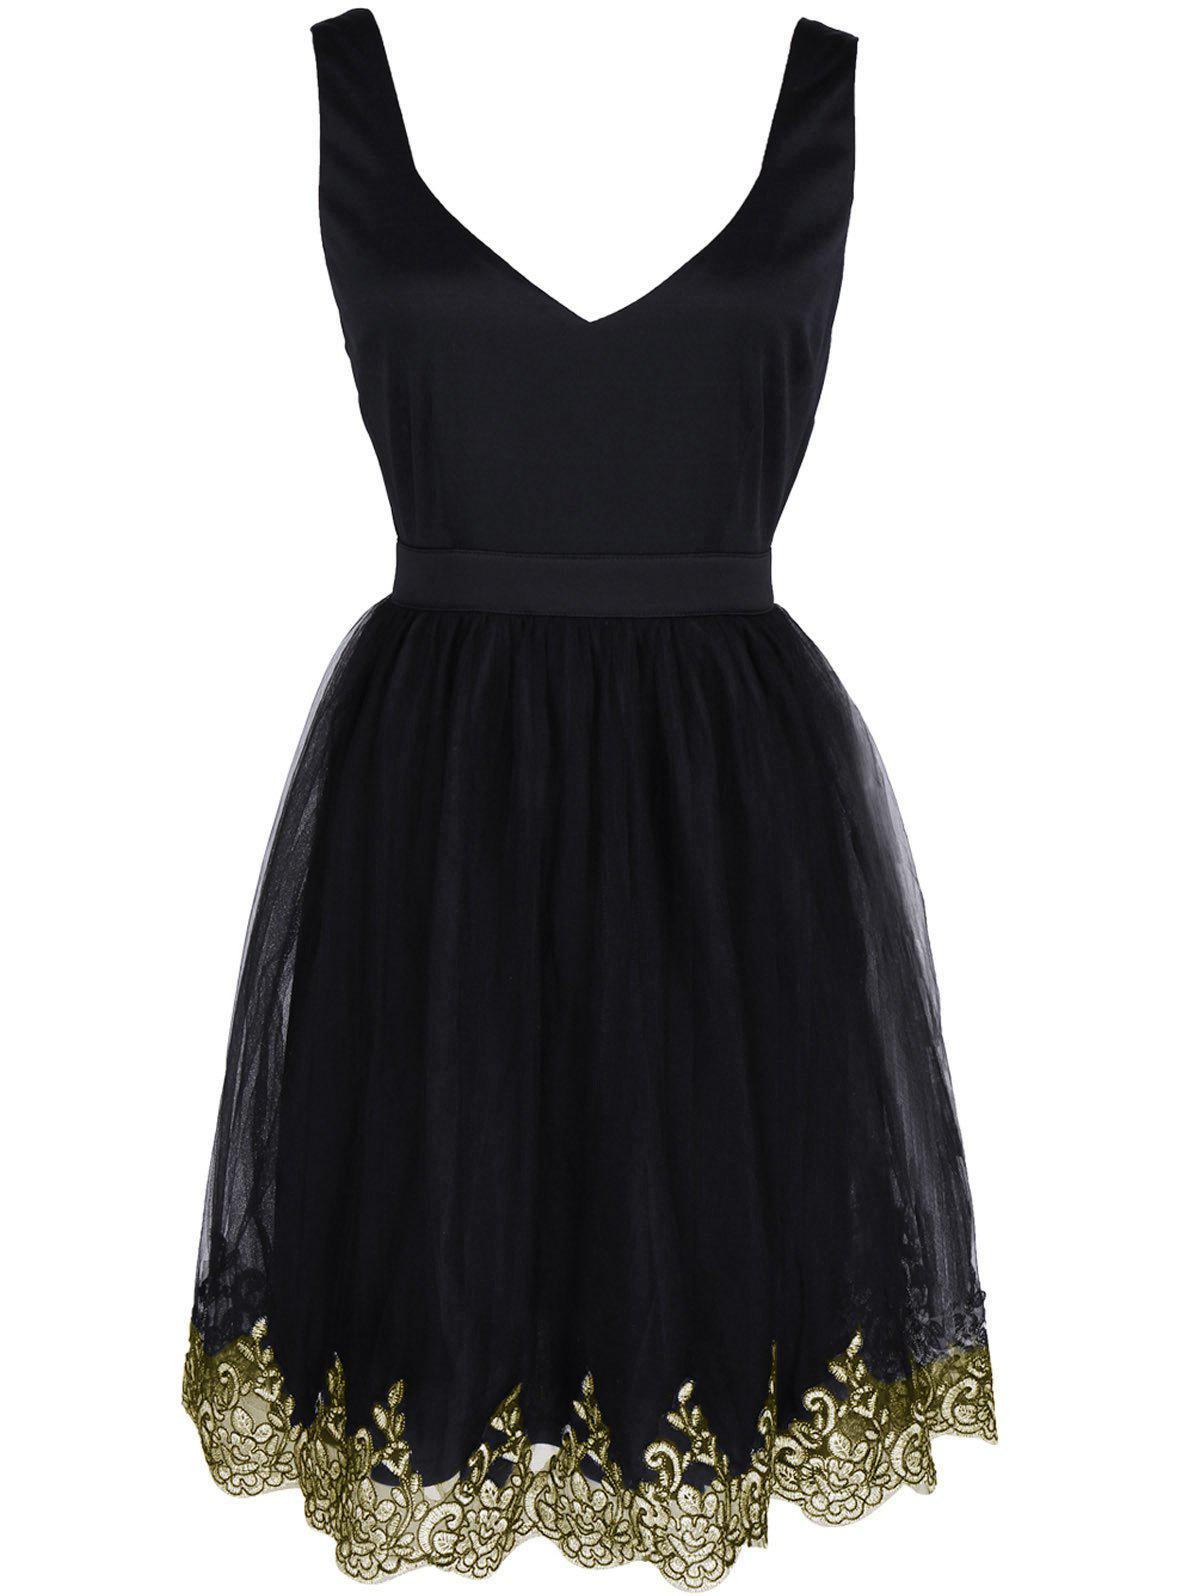 Alluring Women's Floral Embroidered Lace Spliced Dress - BLACK XL